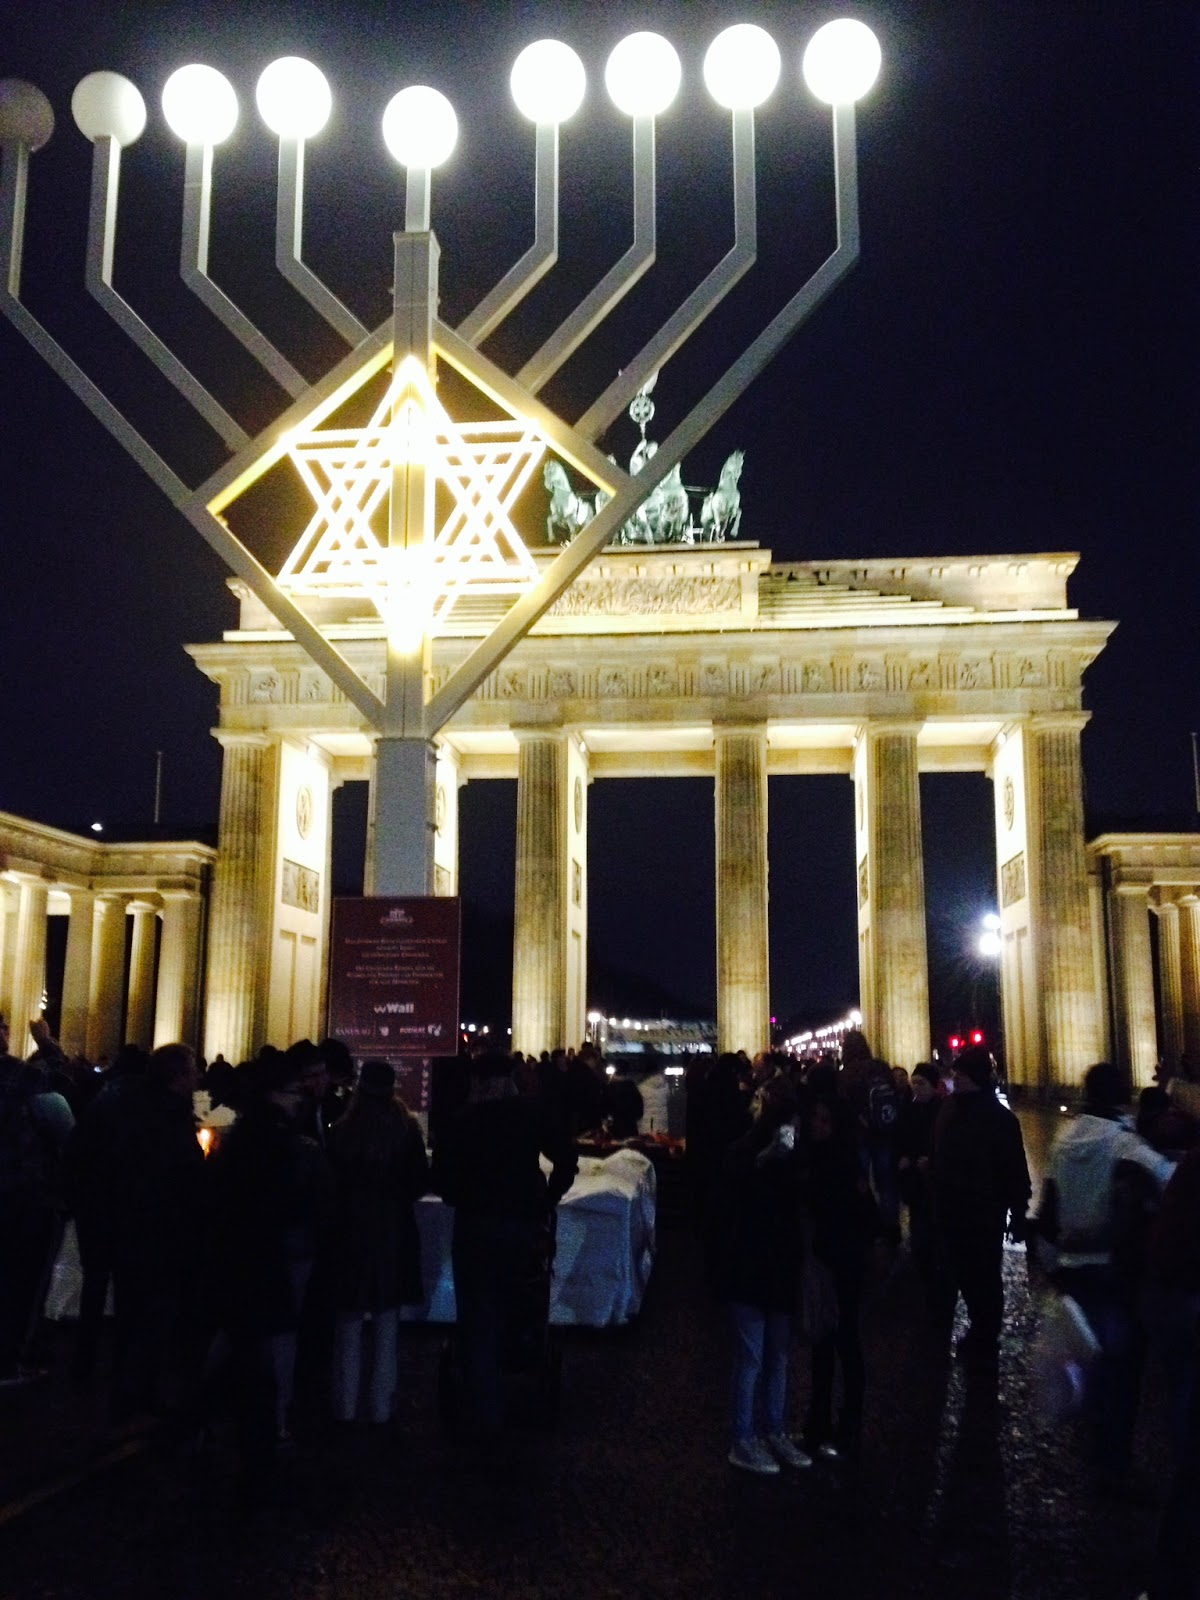 Brandenburg gate menorah